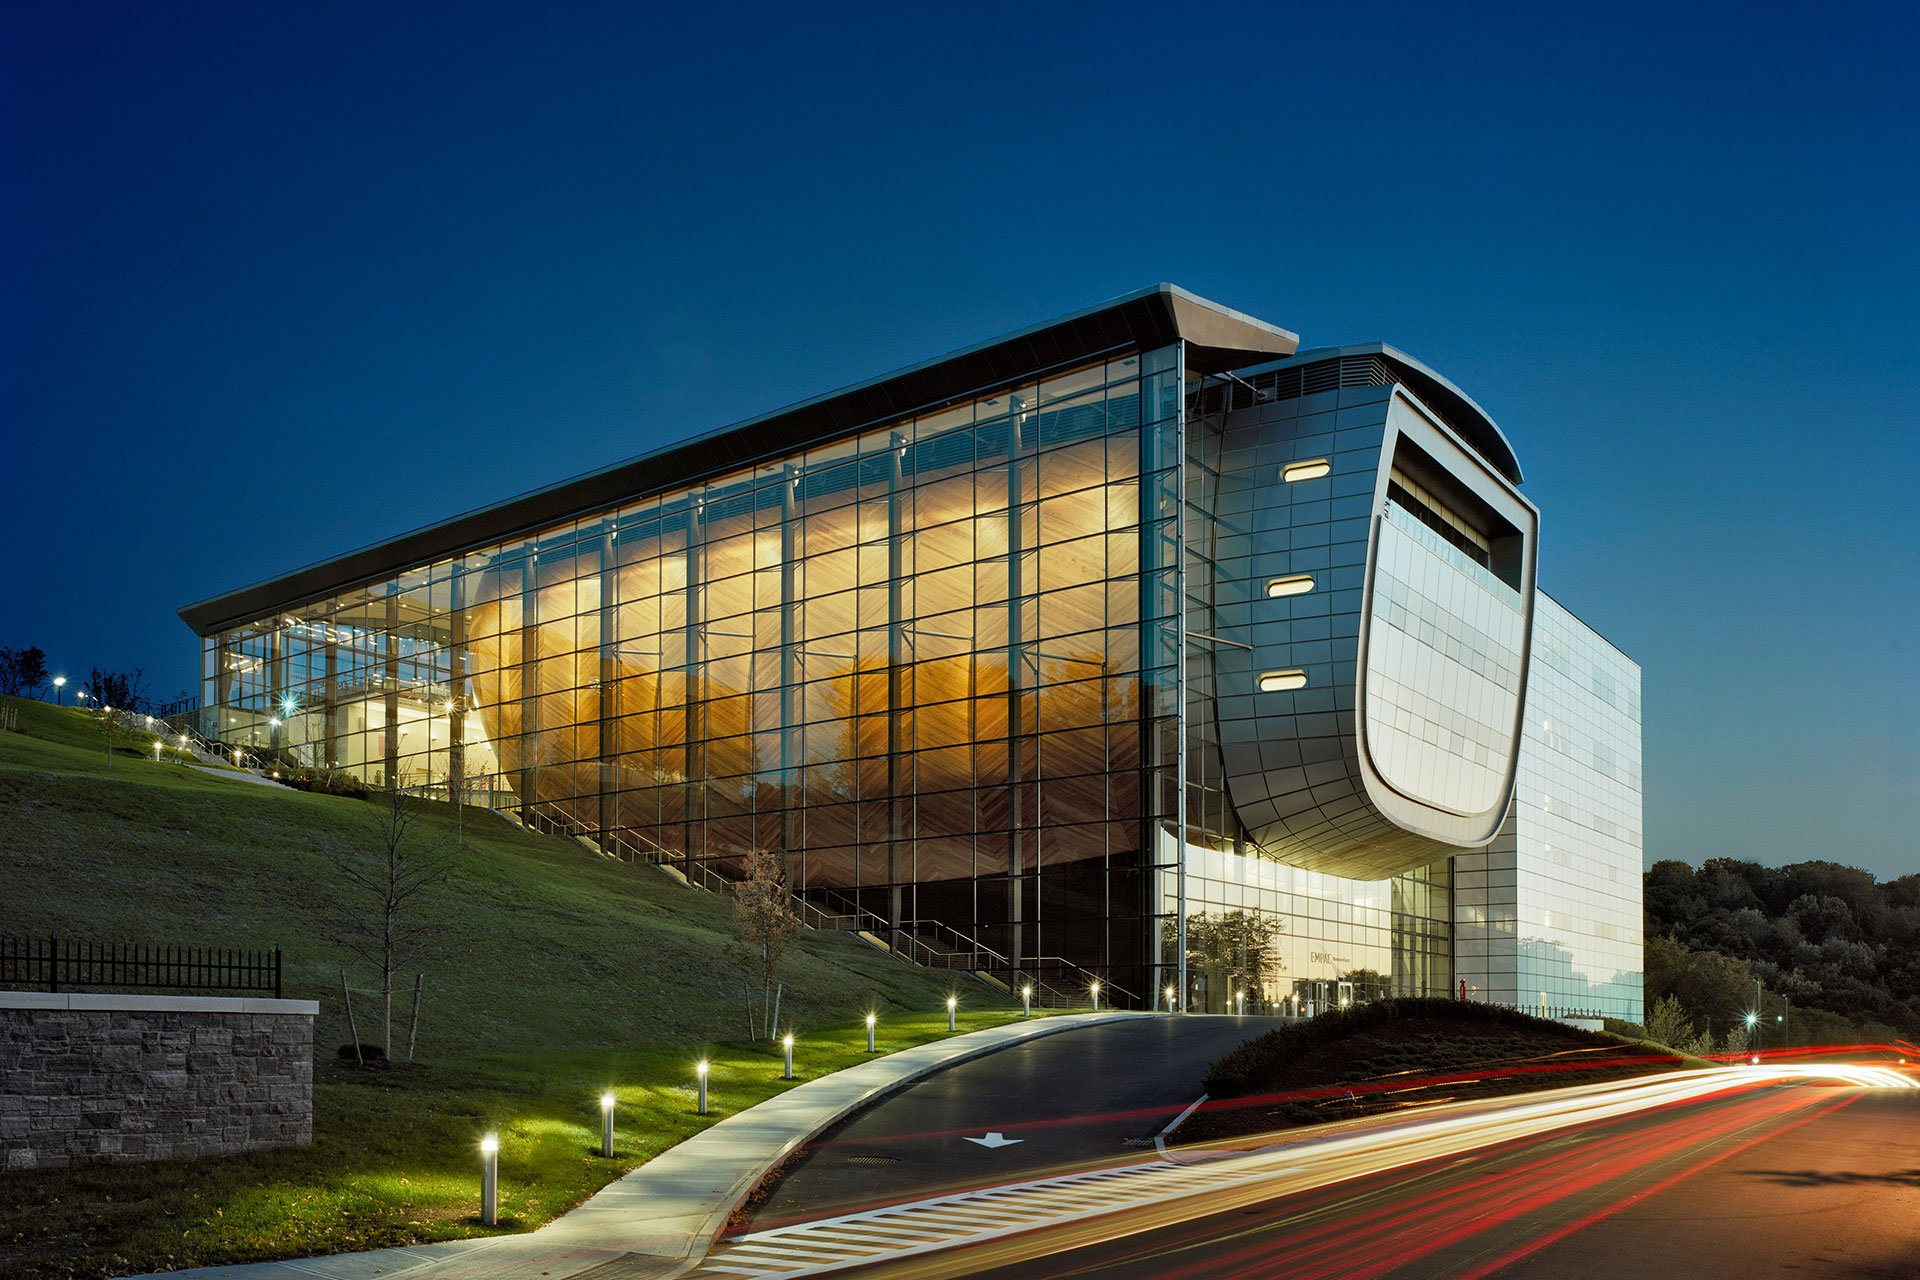 RPI – EXPERIMENTAL MEDIA AND PERFORMING ARTS CENTER OVI architectural lighting design